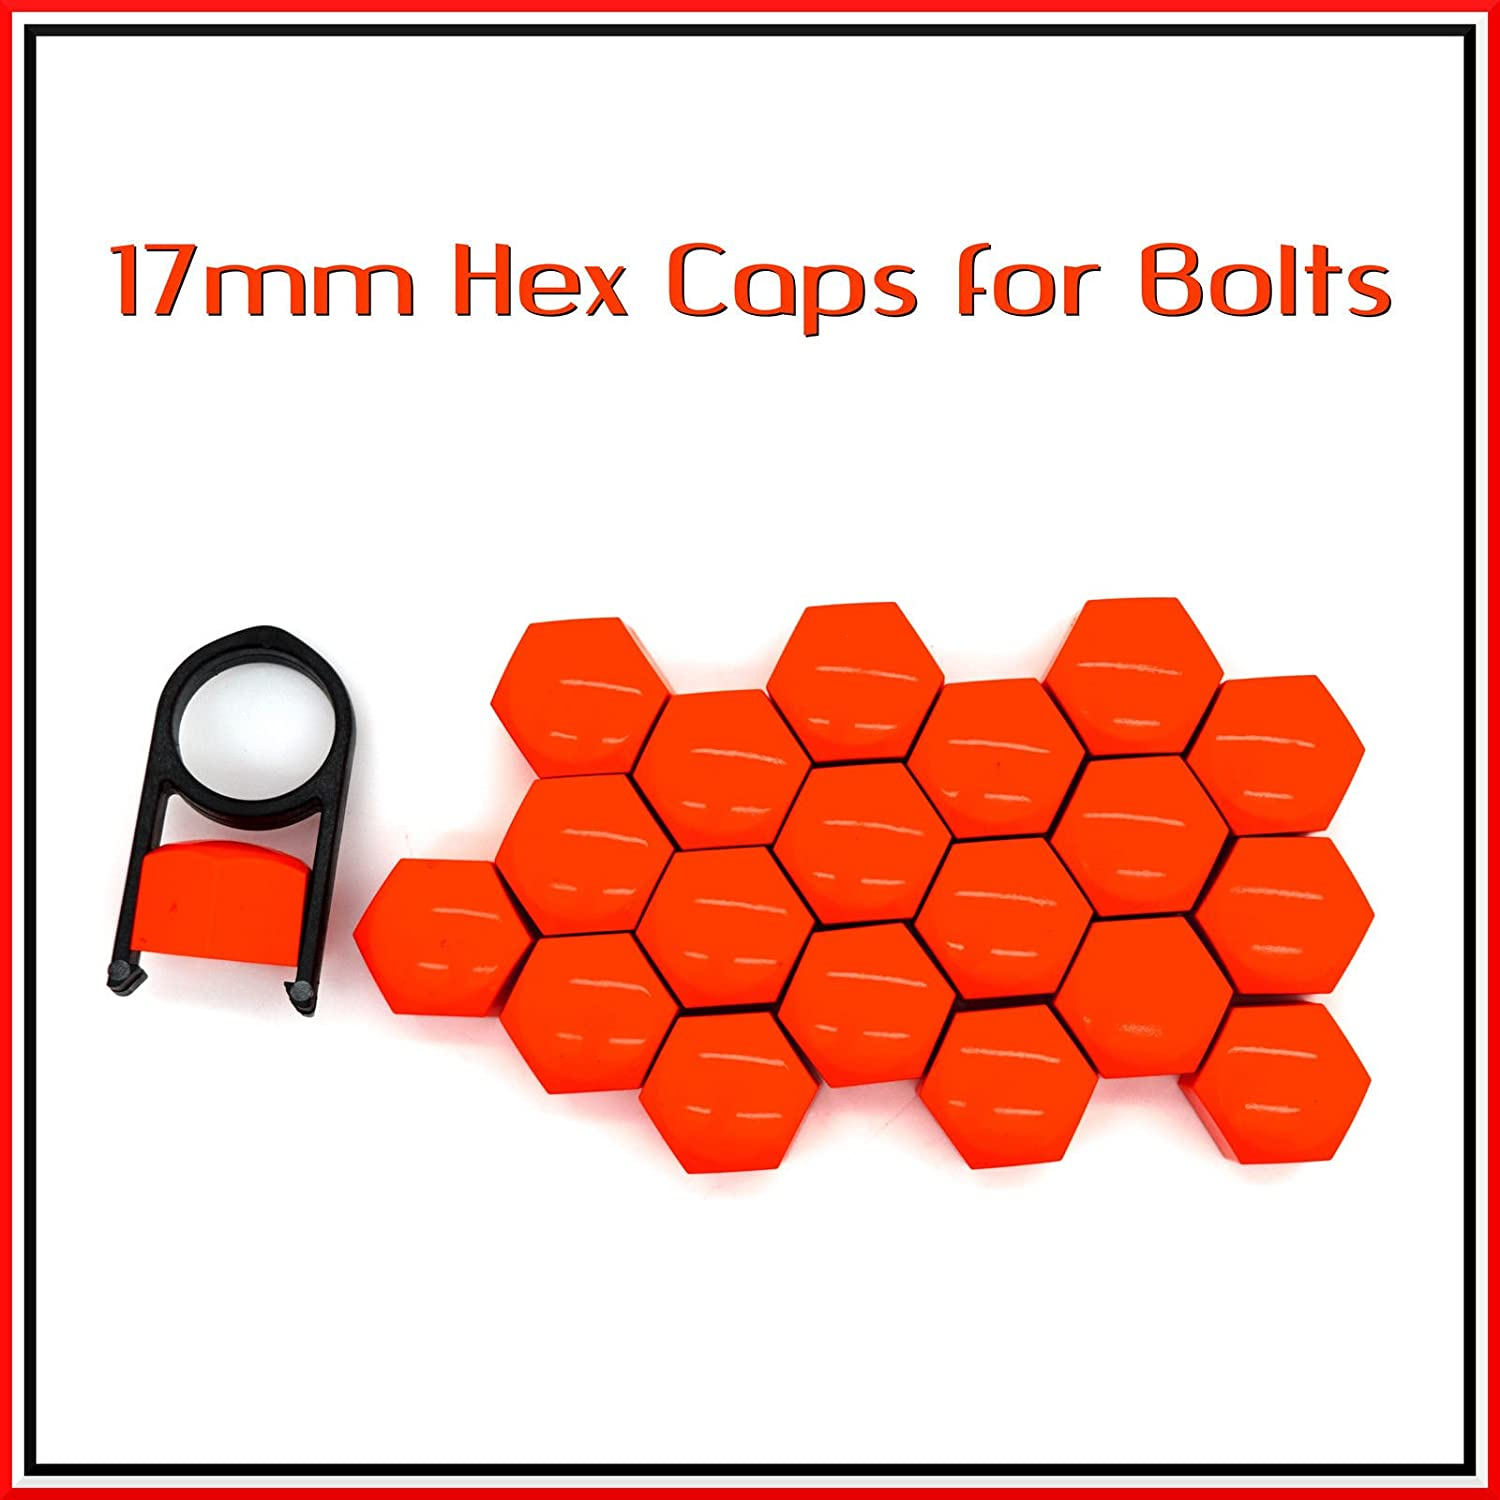 17mm Set 20 Red Car Caps Bolts Alloy Wheels For Nuts Covers ABS PC Plastic